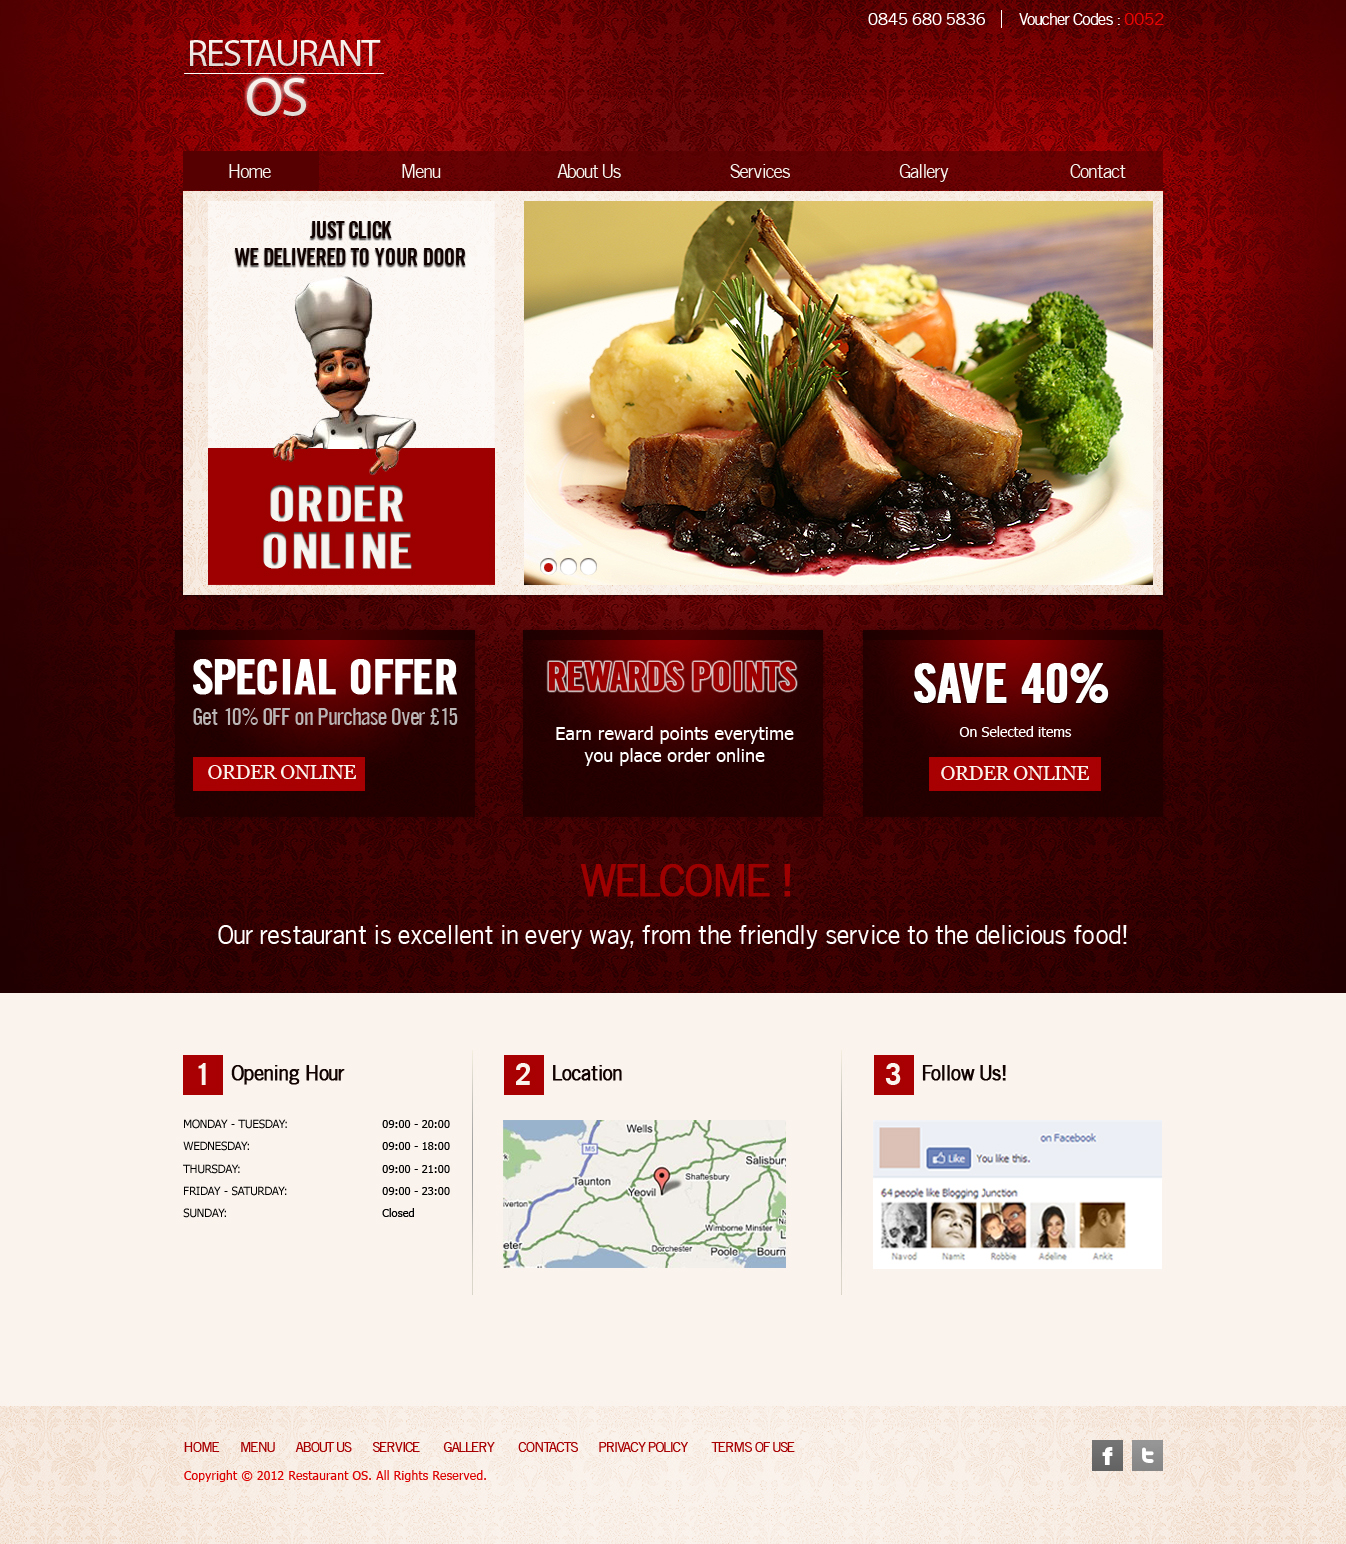 Restaurant, Fast Food, Takeaway Pizza Website Templates